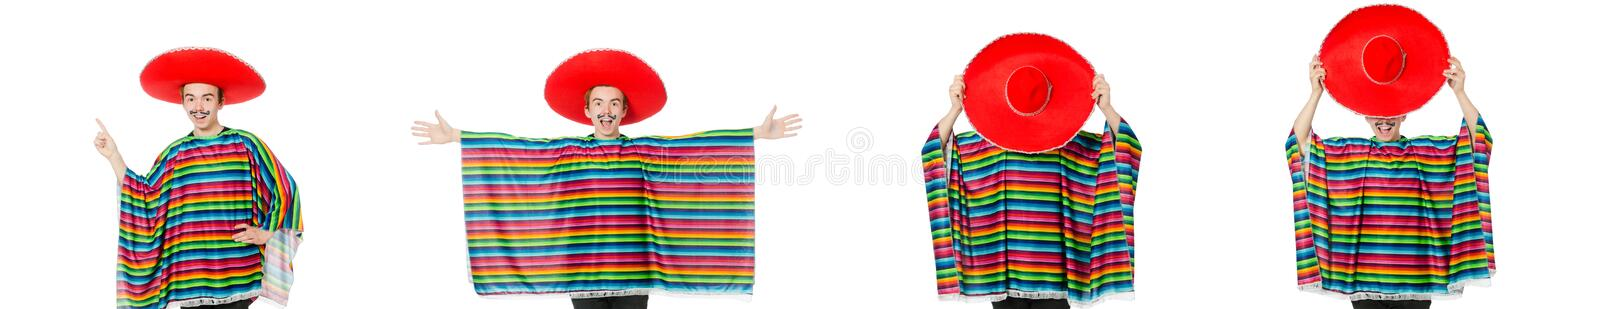 The funny young mexican with false moustache isolated on white stock photo